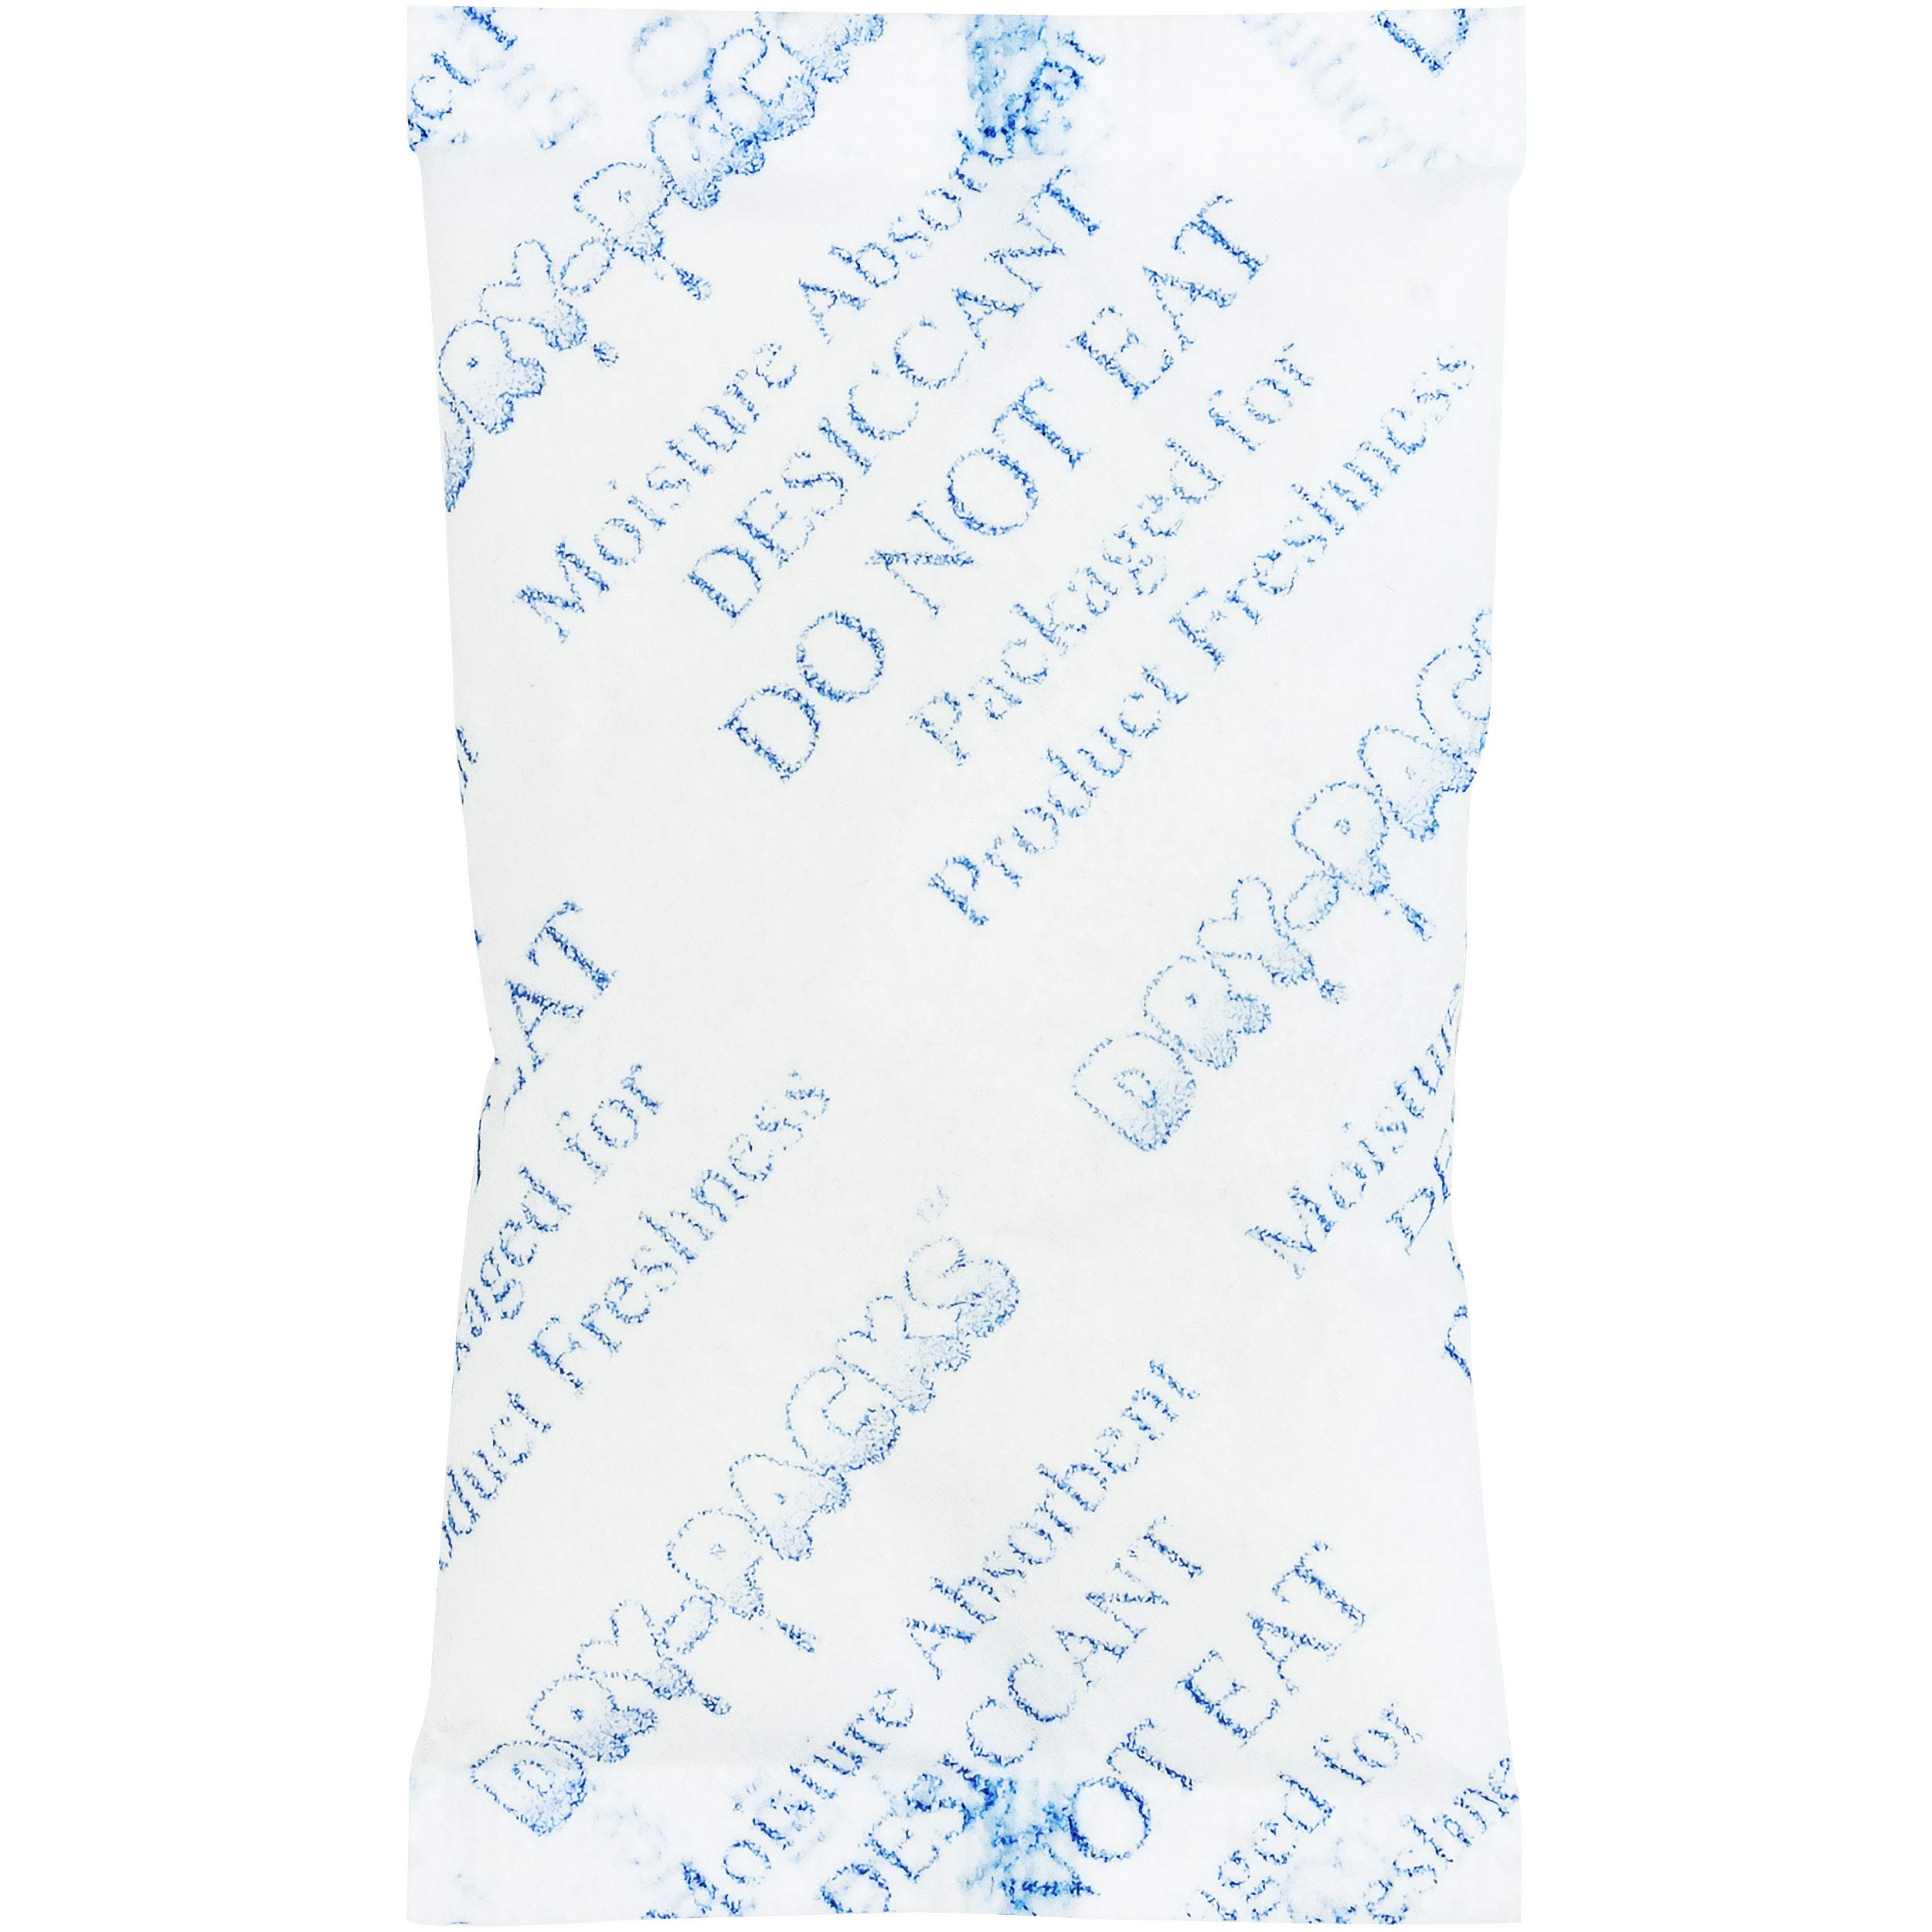 Dry-Packs 10gm Cotton Silica Gel Packet, Pack of 100